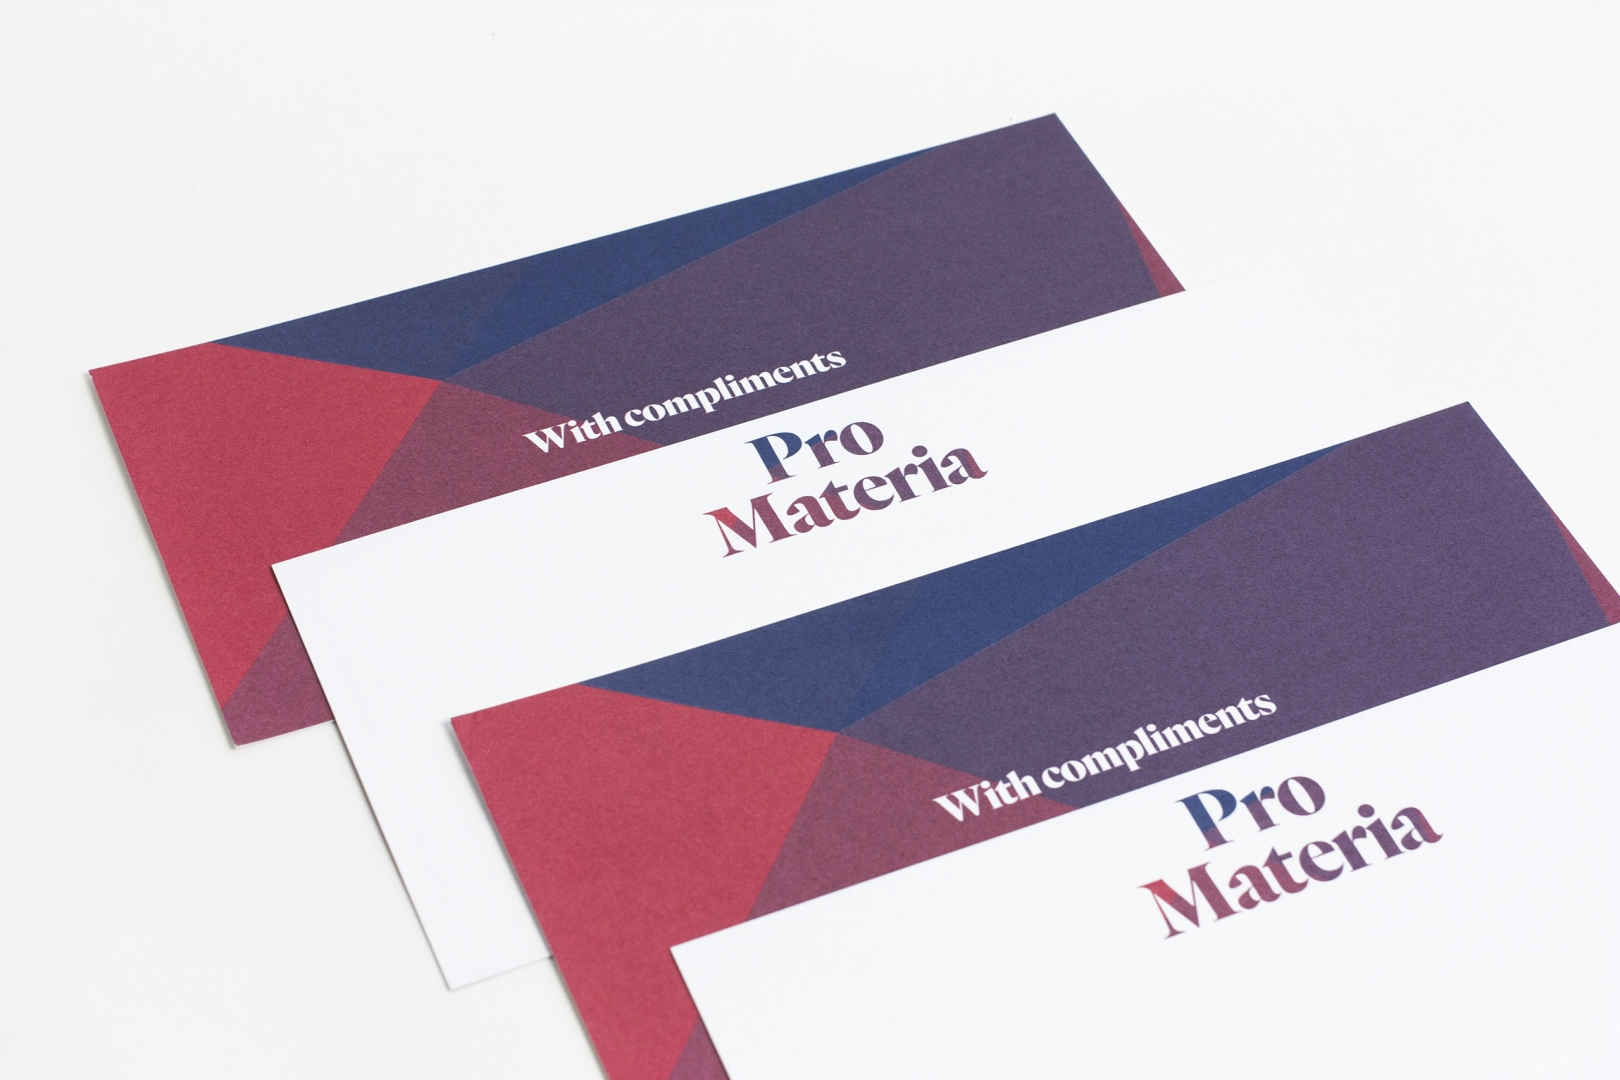 Pro Materia With Compliments cards